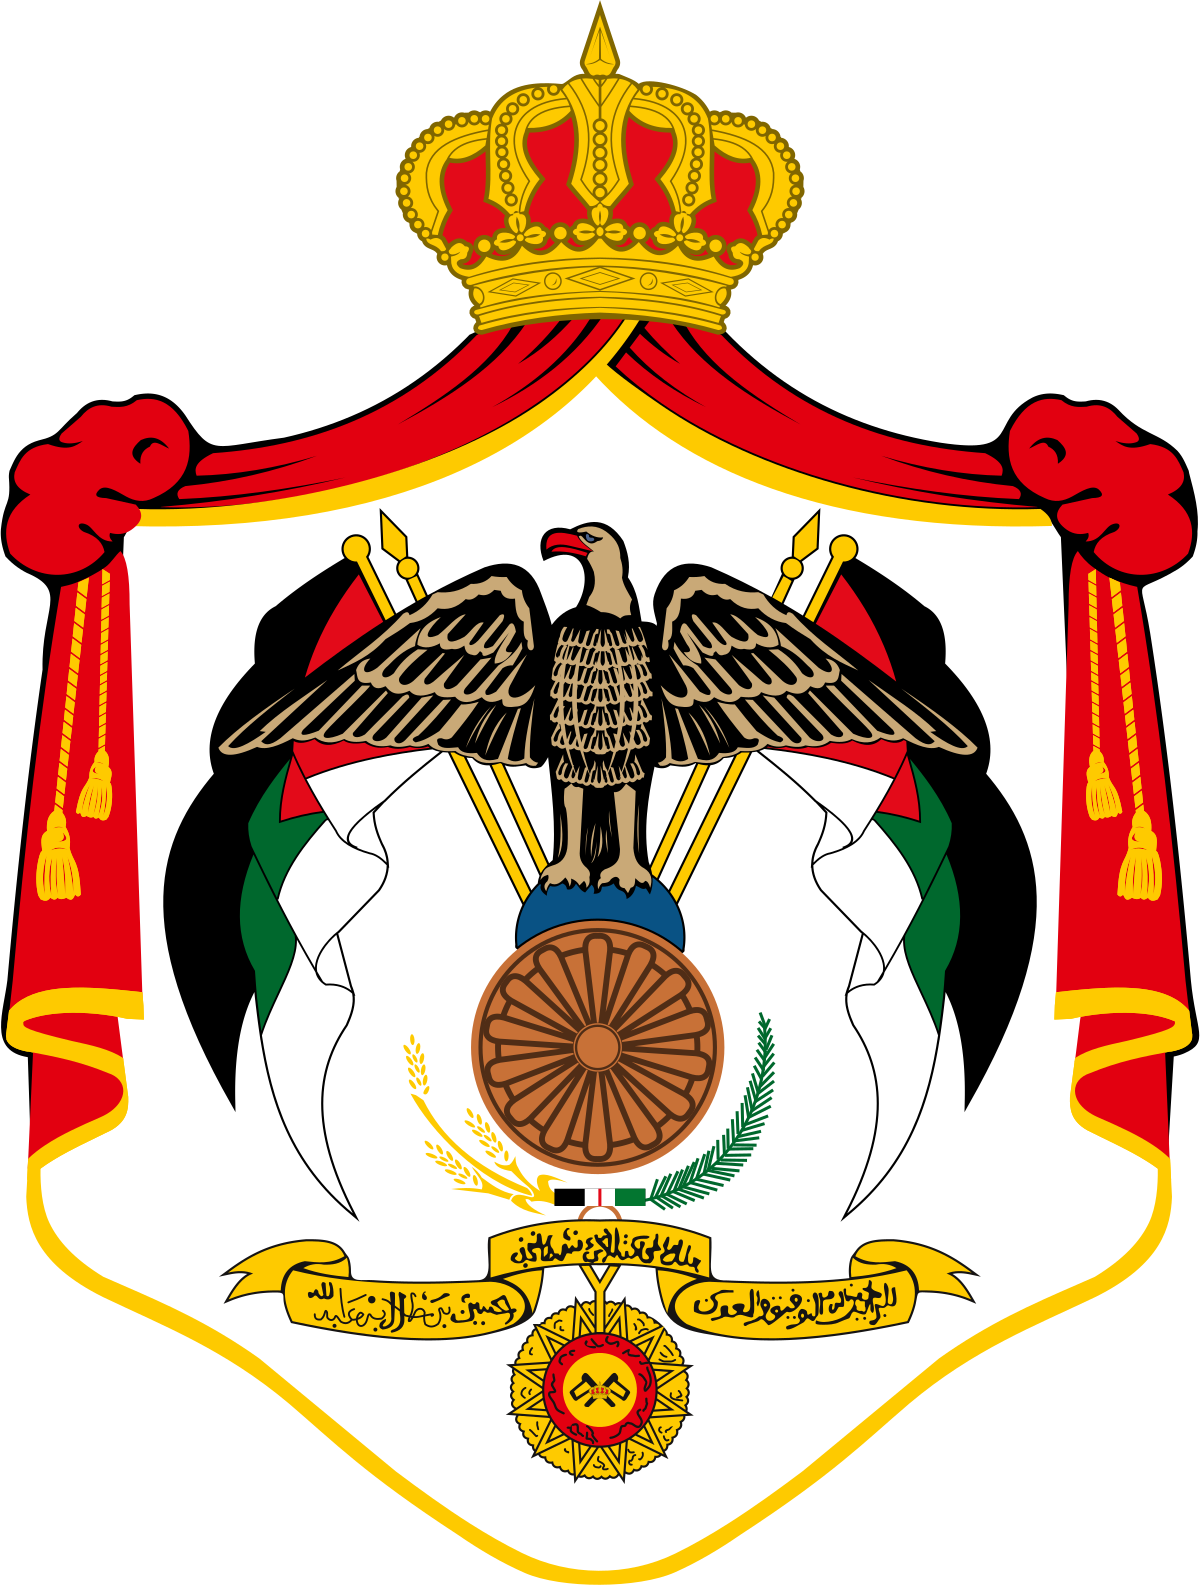 Democracy clipart civil rights act. Jordanian general election wikipedia